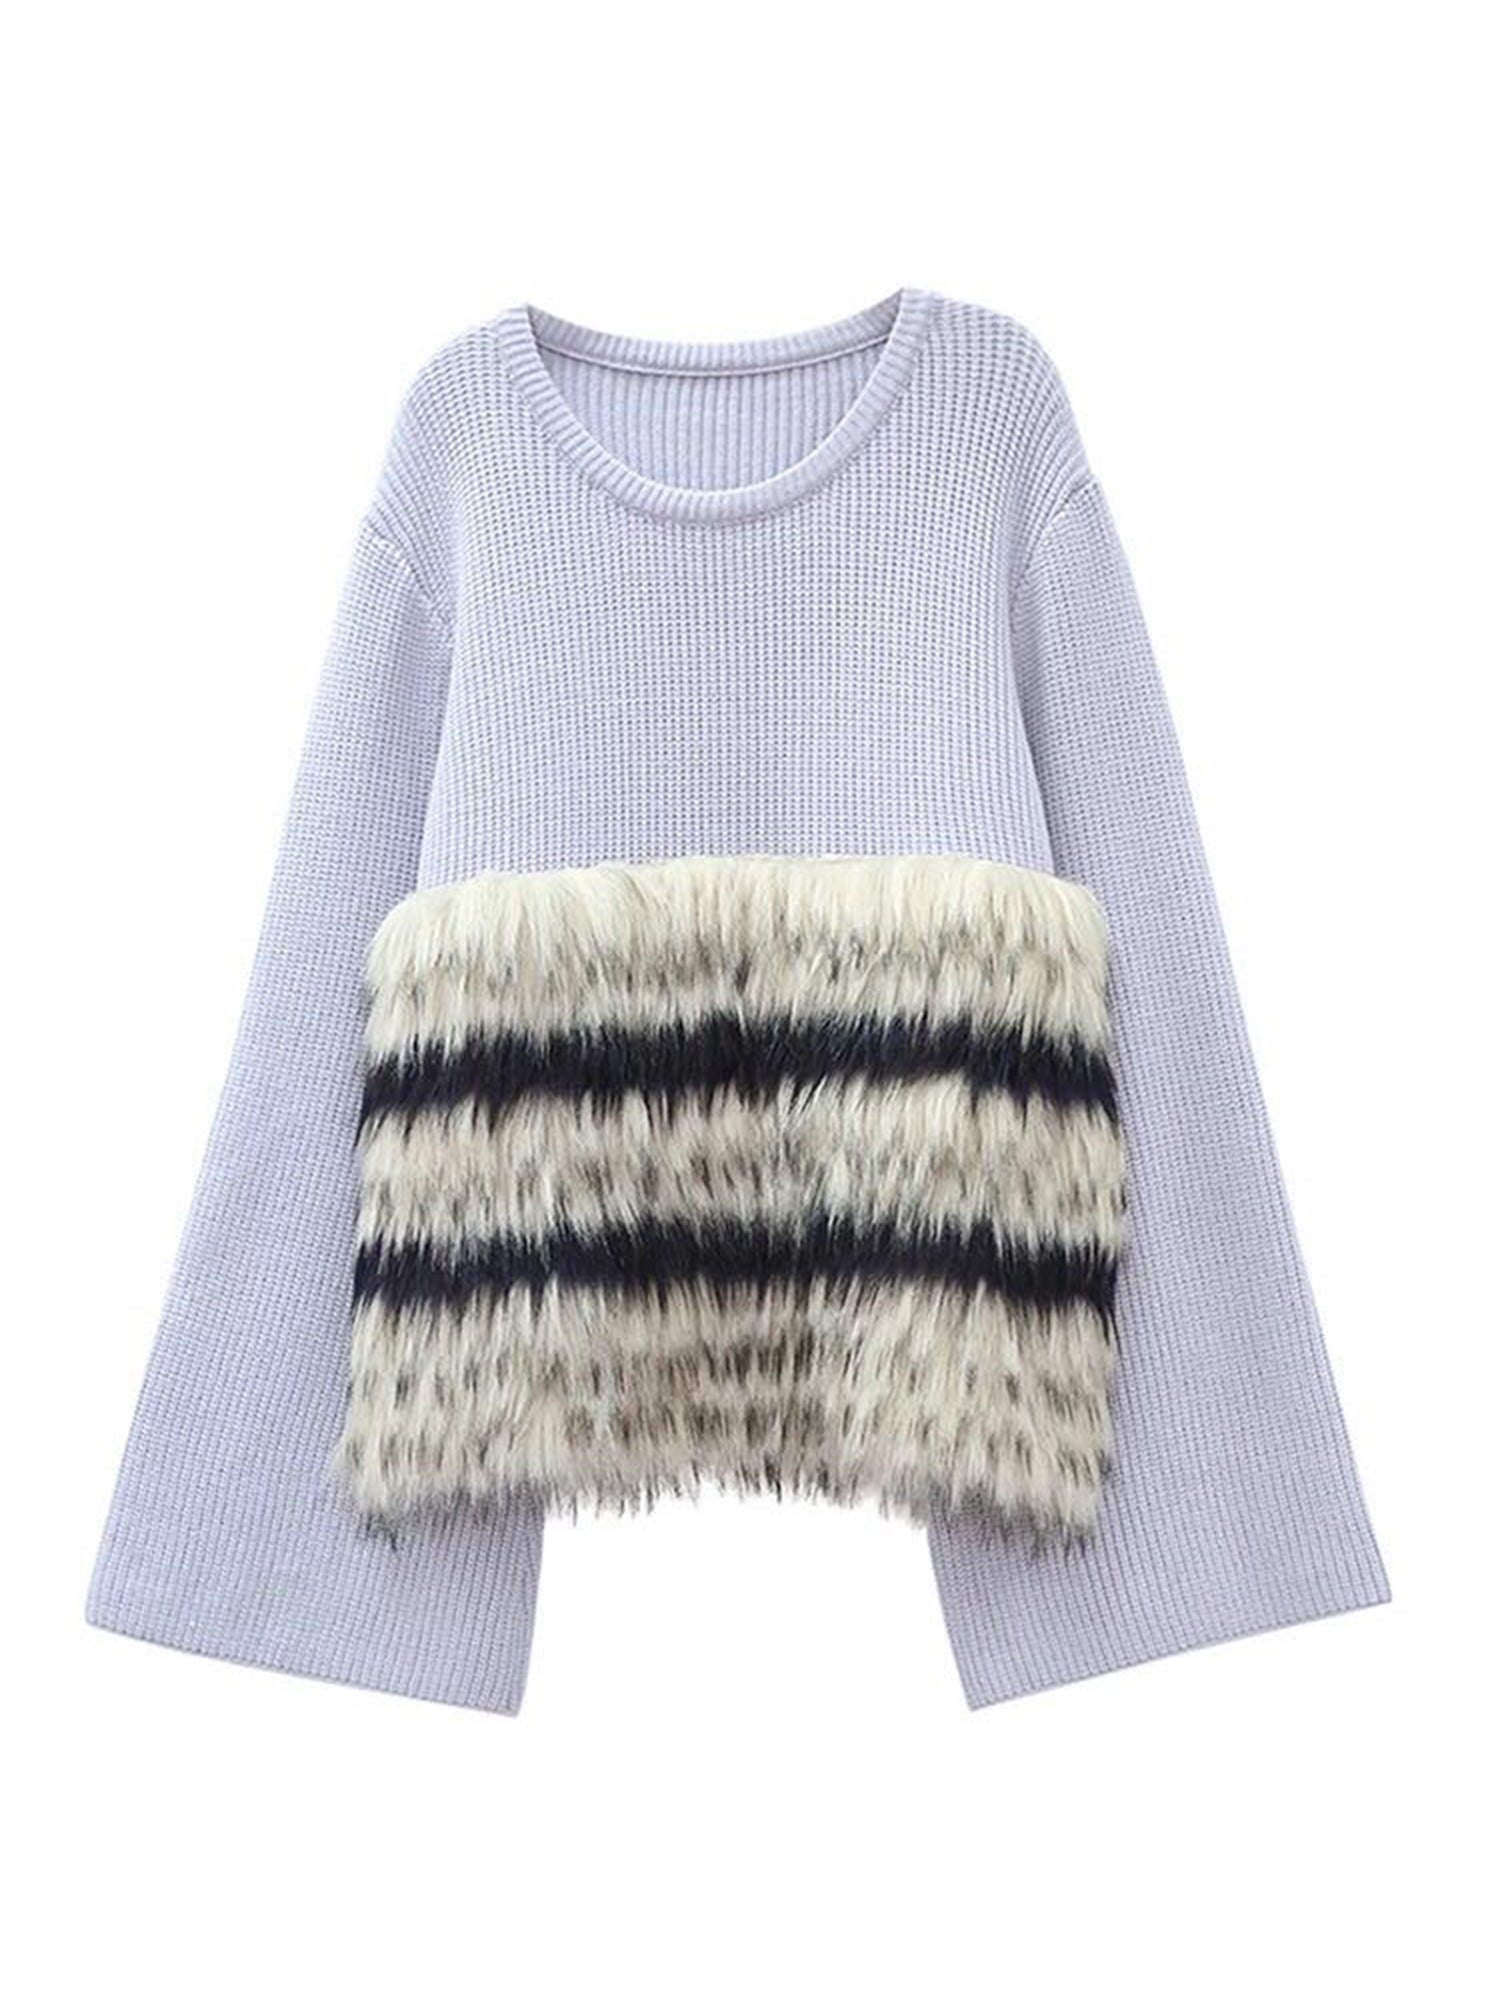 'Paris' Fluted Sleeve Fur Sweater (2 Colors)